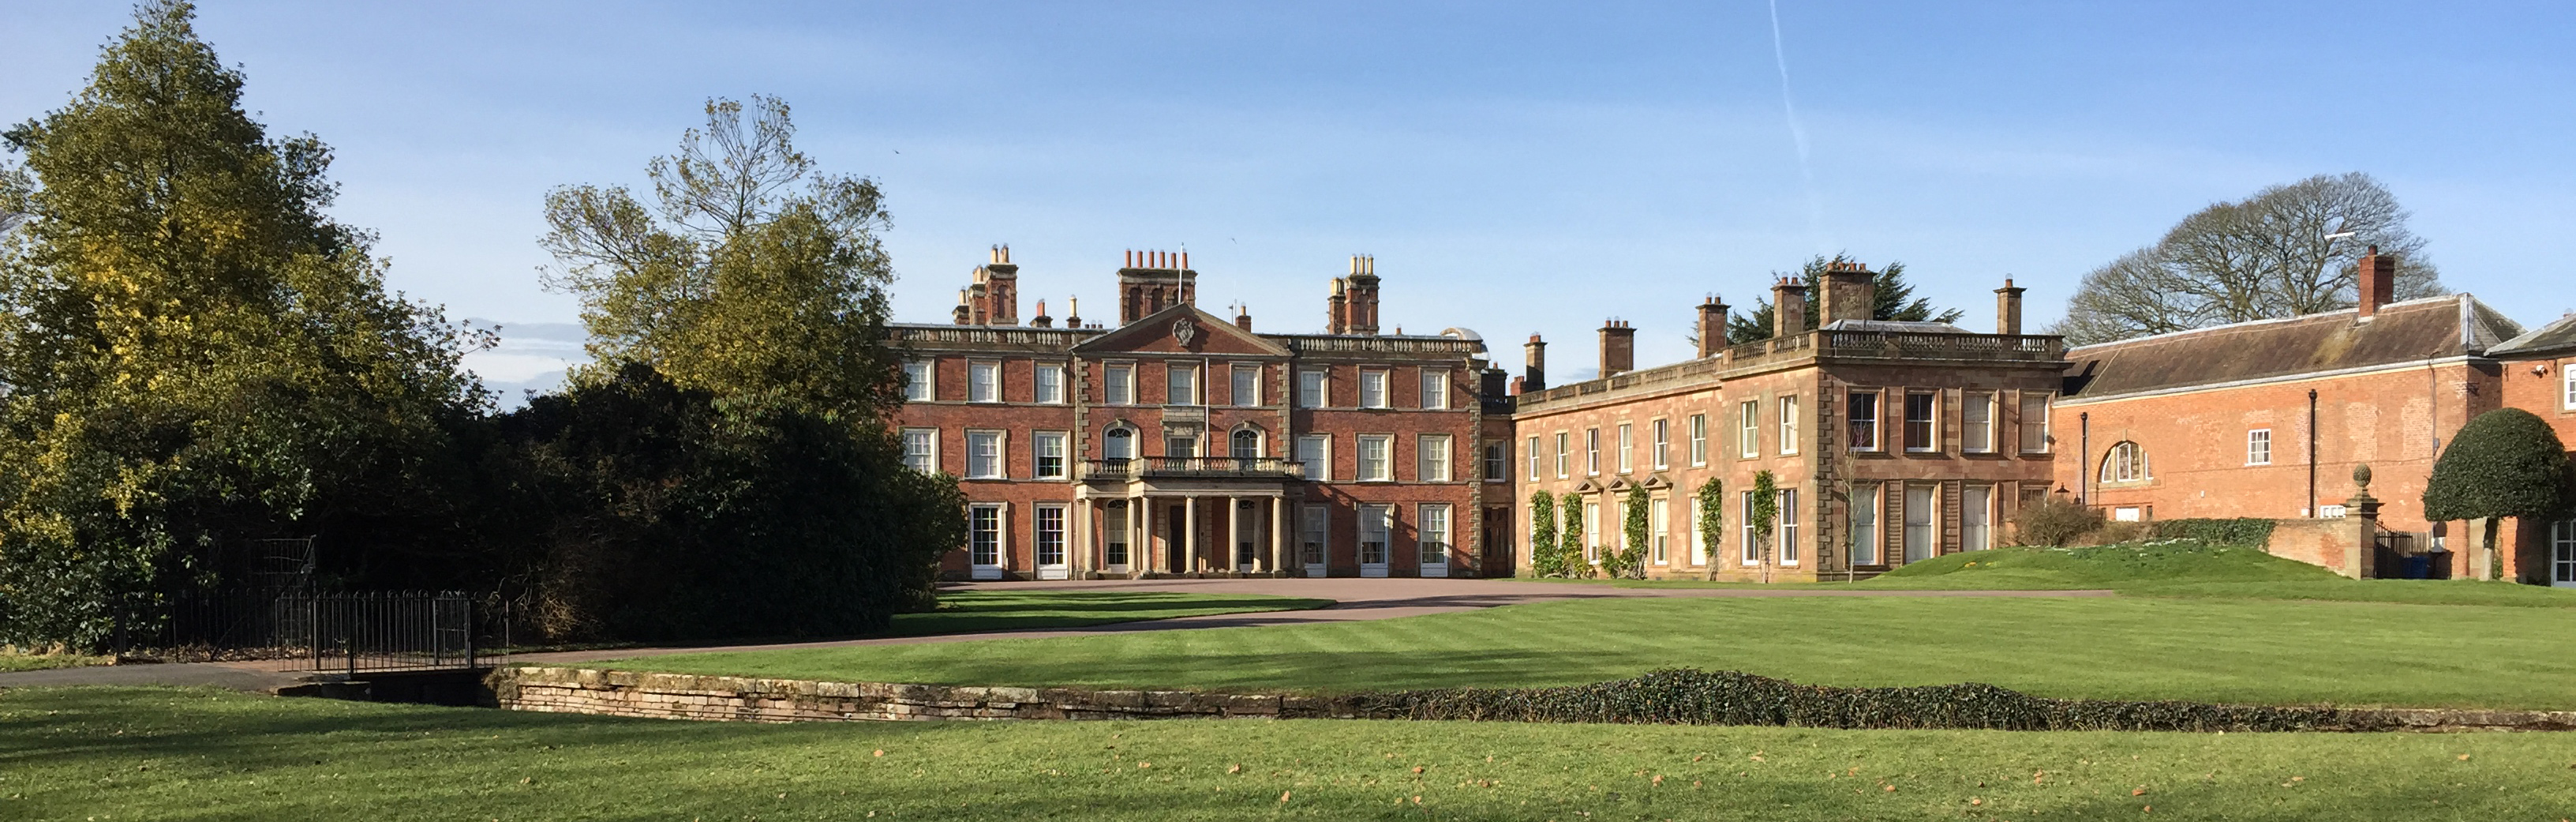 weston park view reduced